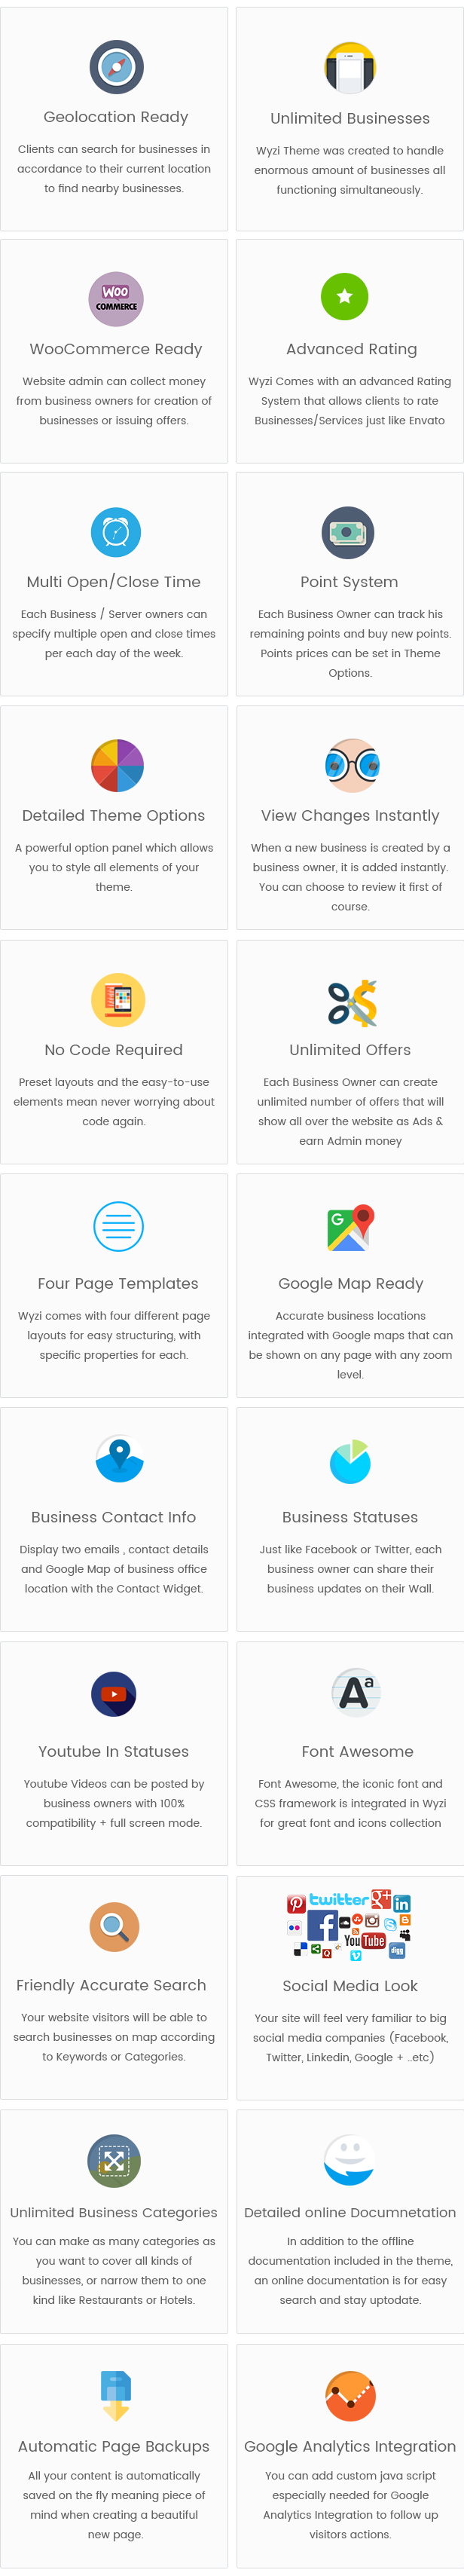 Wyzi Business Finder Social Directory Features - Geolocation Ready - Unlimited Businesses - Paypal Ready - Social Media Look